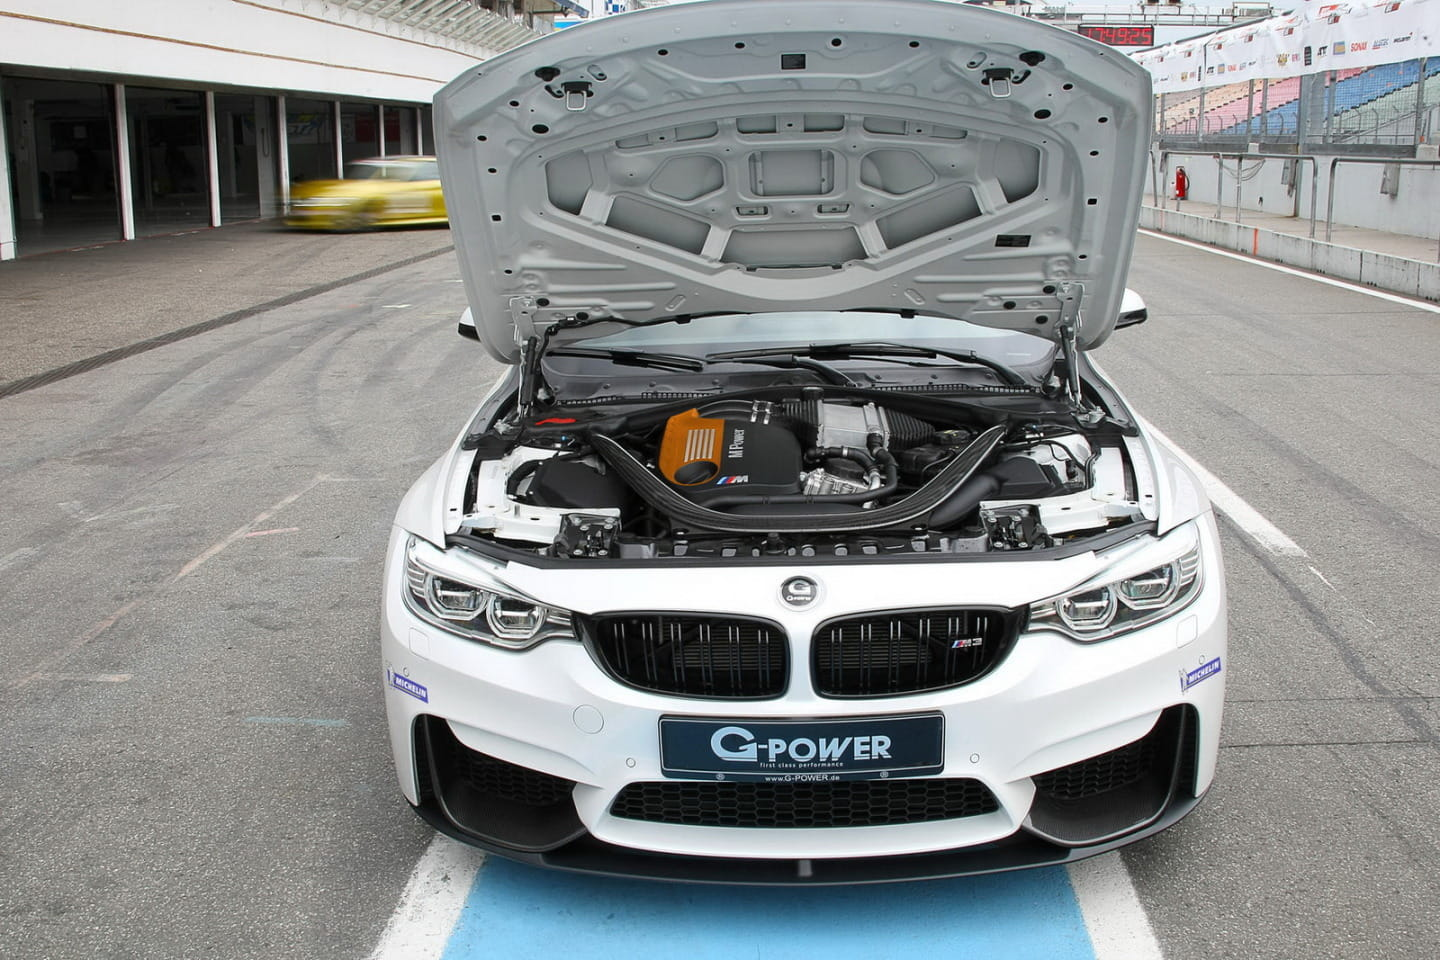 BMW_M3_G-power_DM_2015_3